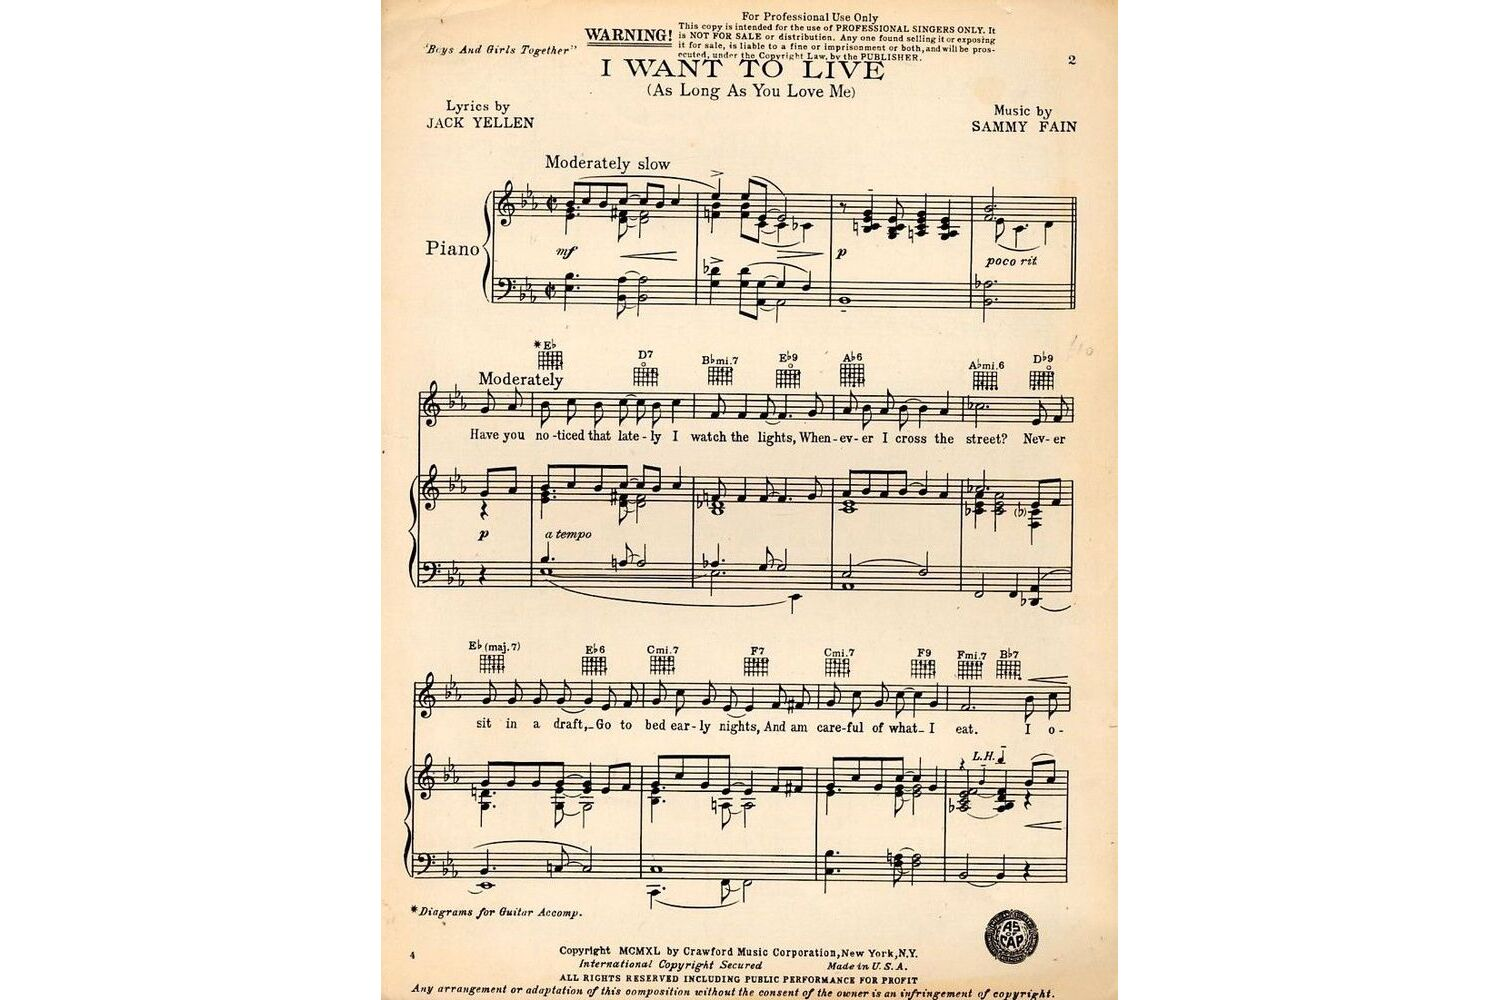 I Want to Live (As Long as You Love Me) - Song - Key of E flat -  Professional Copy only £10.00